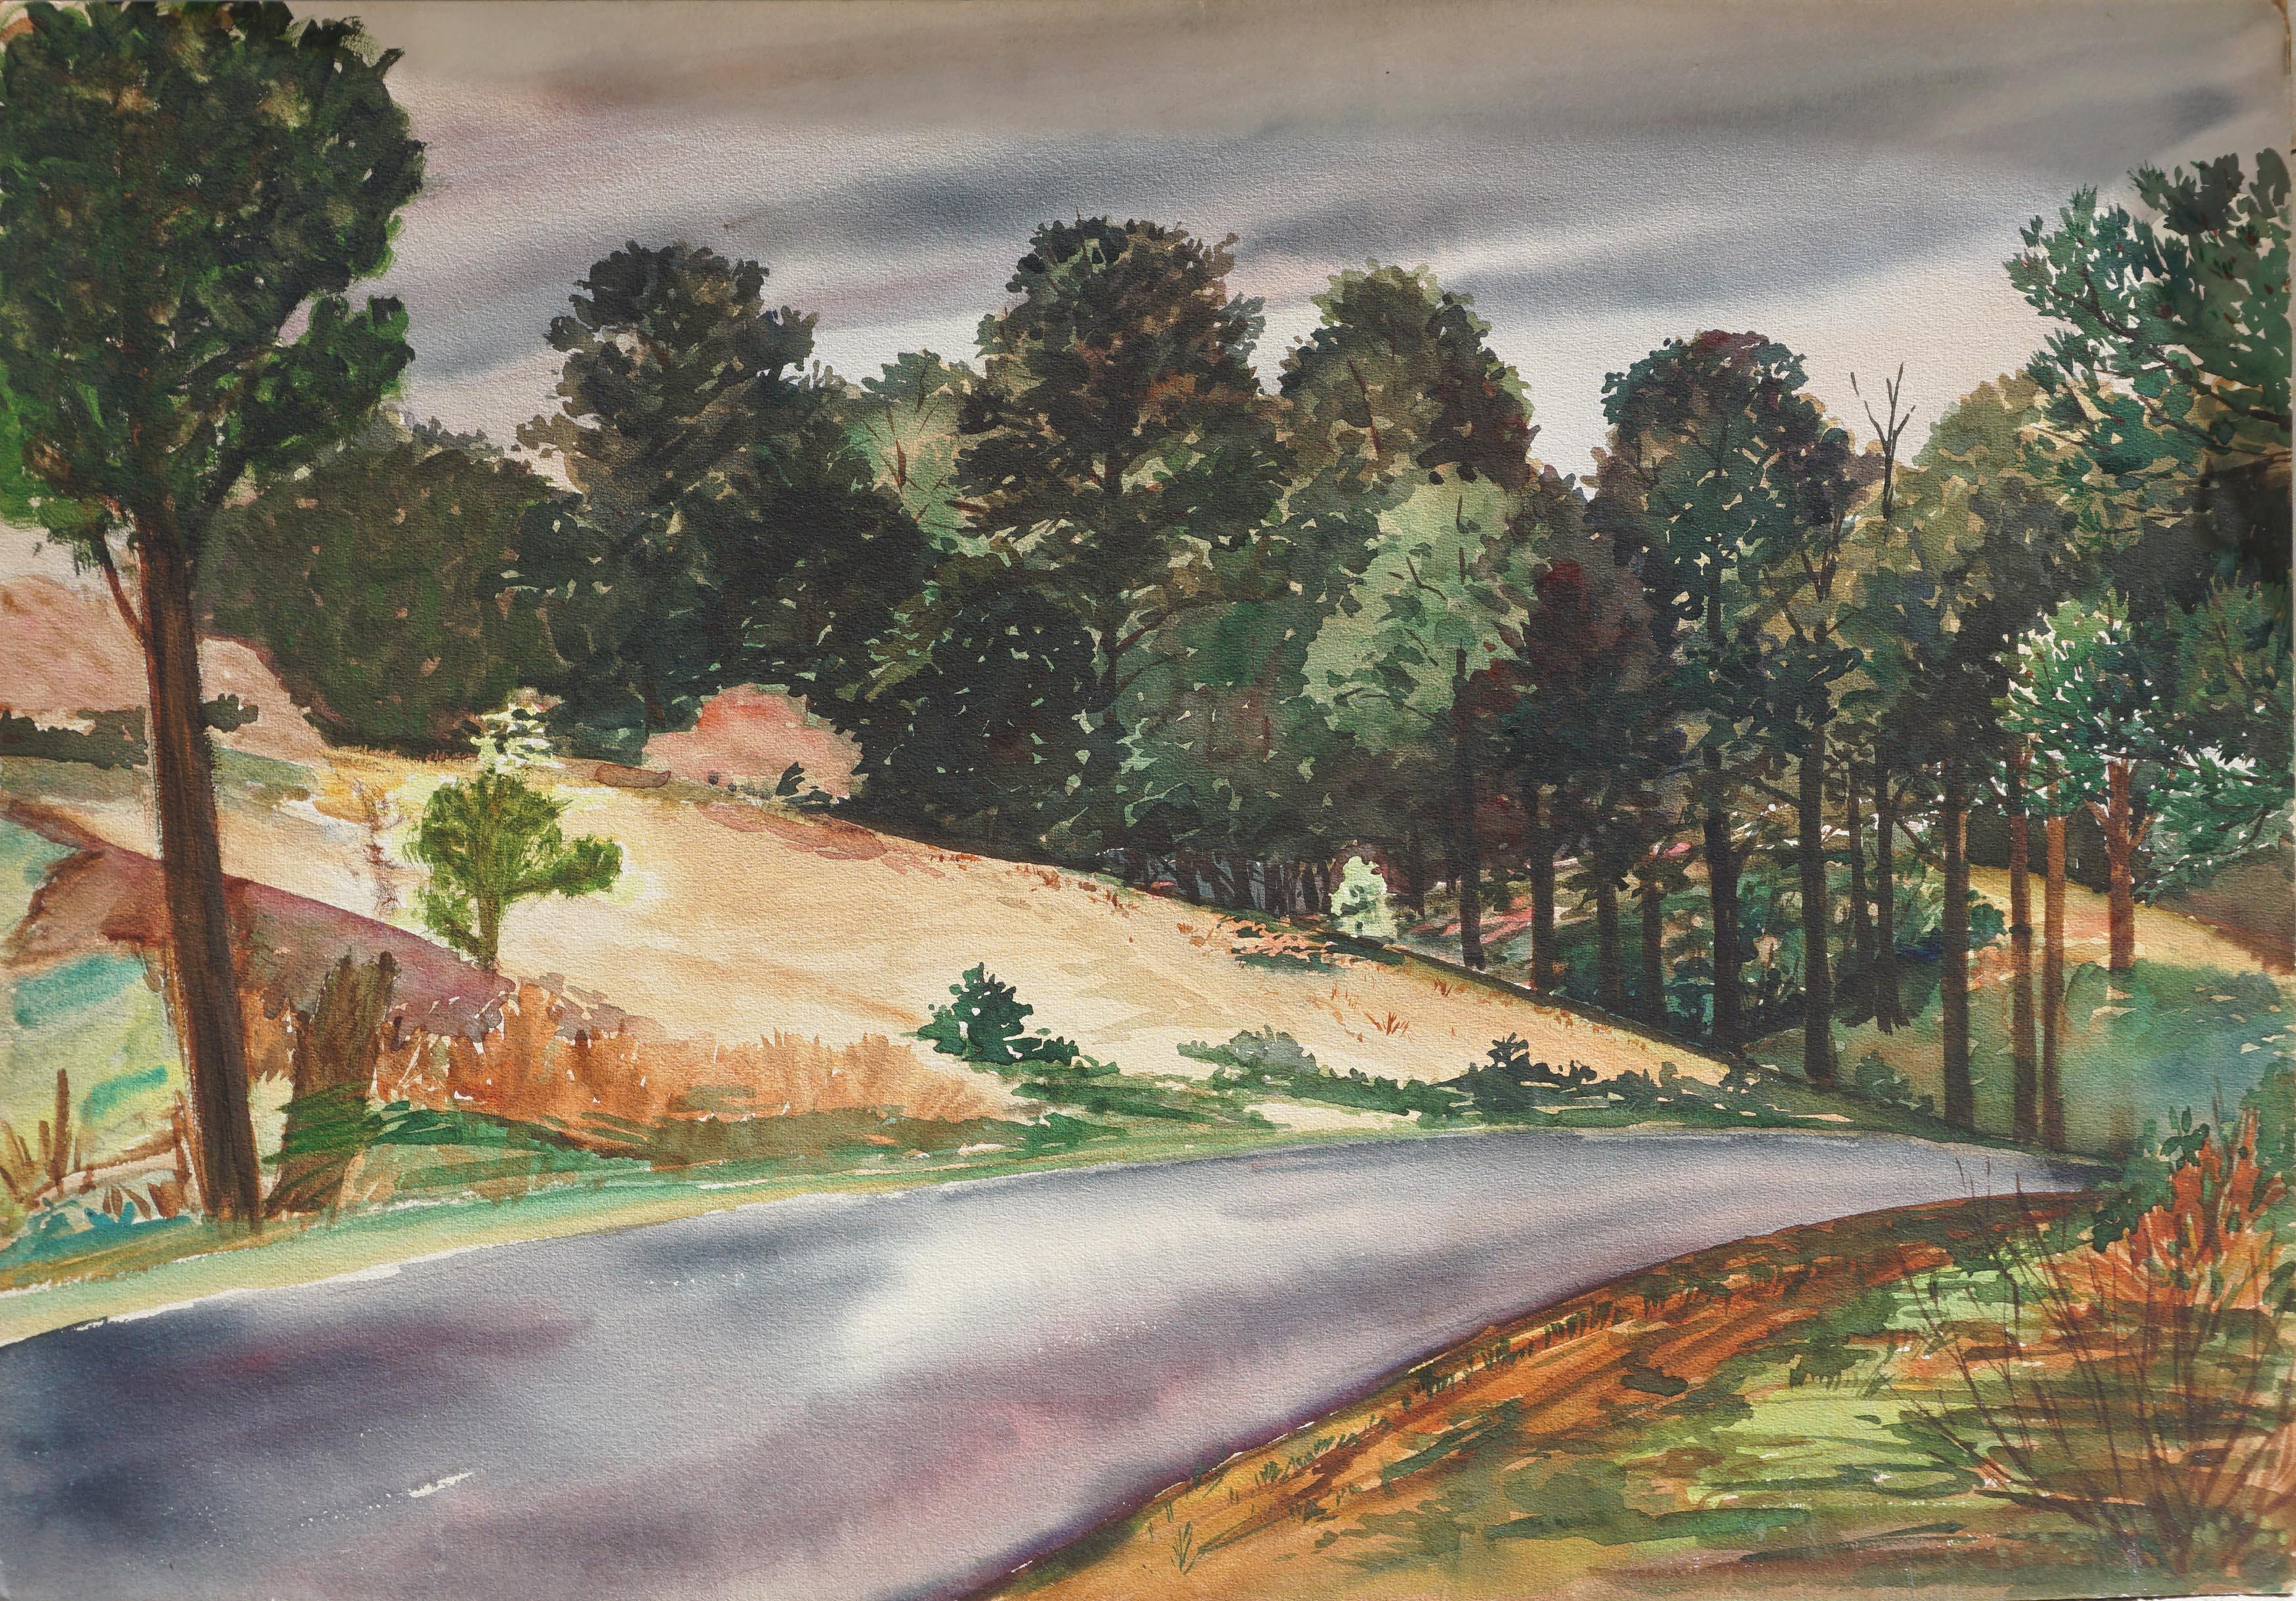 Country Lane in the Pines - Mid Century Landscape